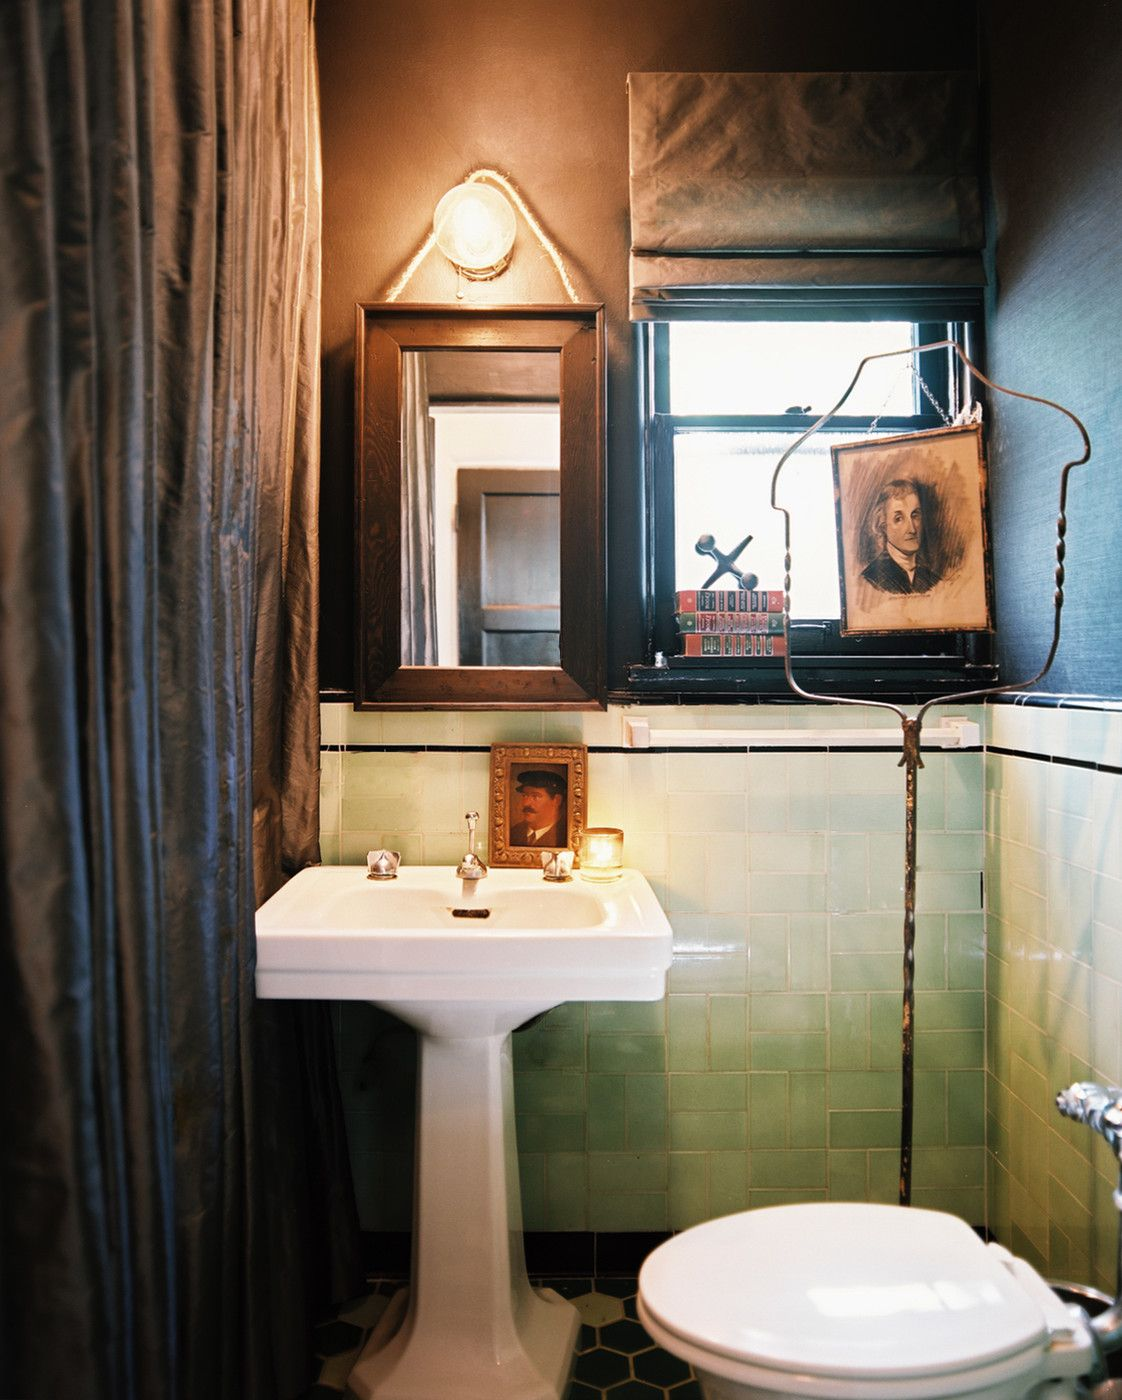 Bohemian Vintage Bathroom: Vintage green tile and a white pedestal sink contrasted with black accents.